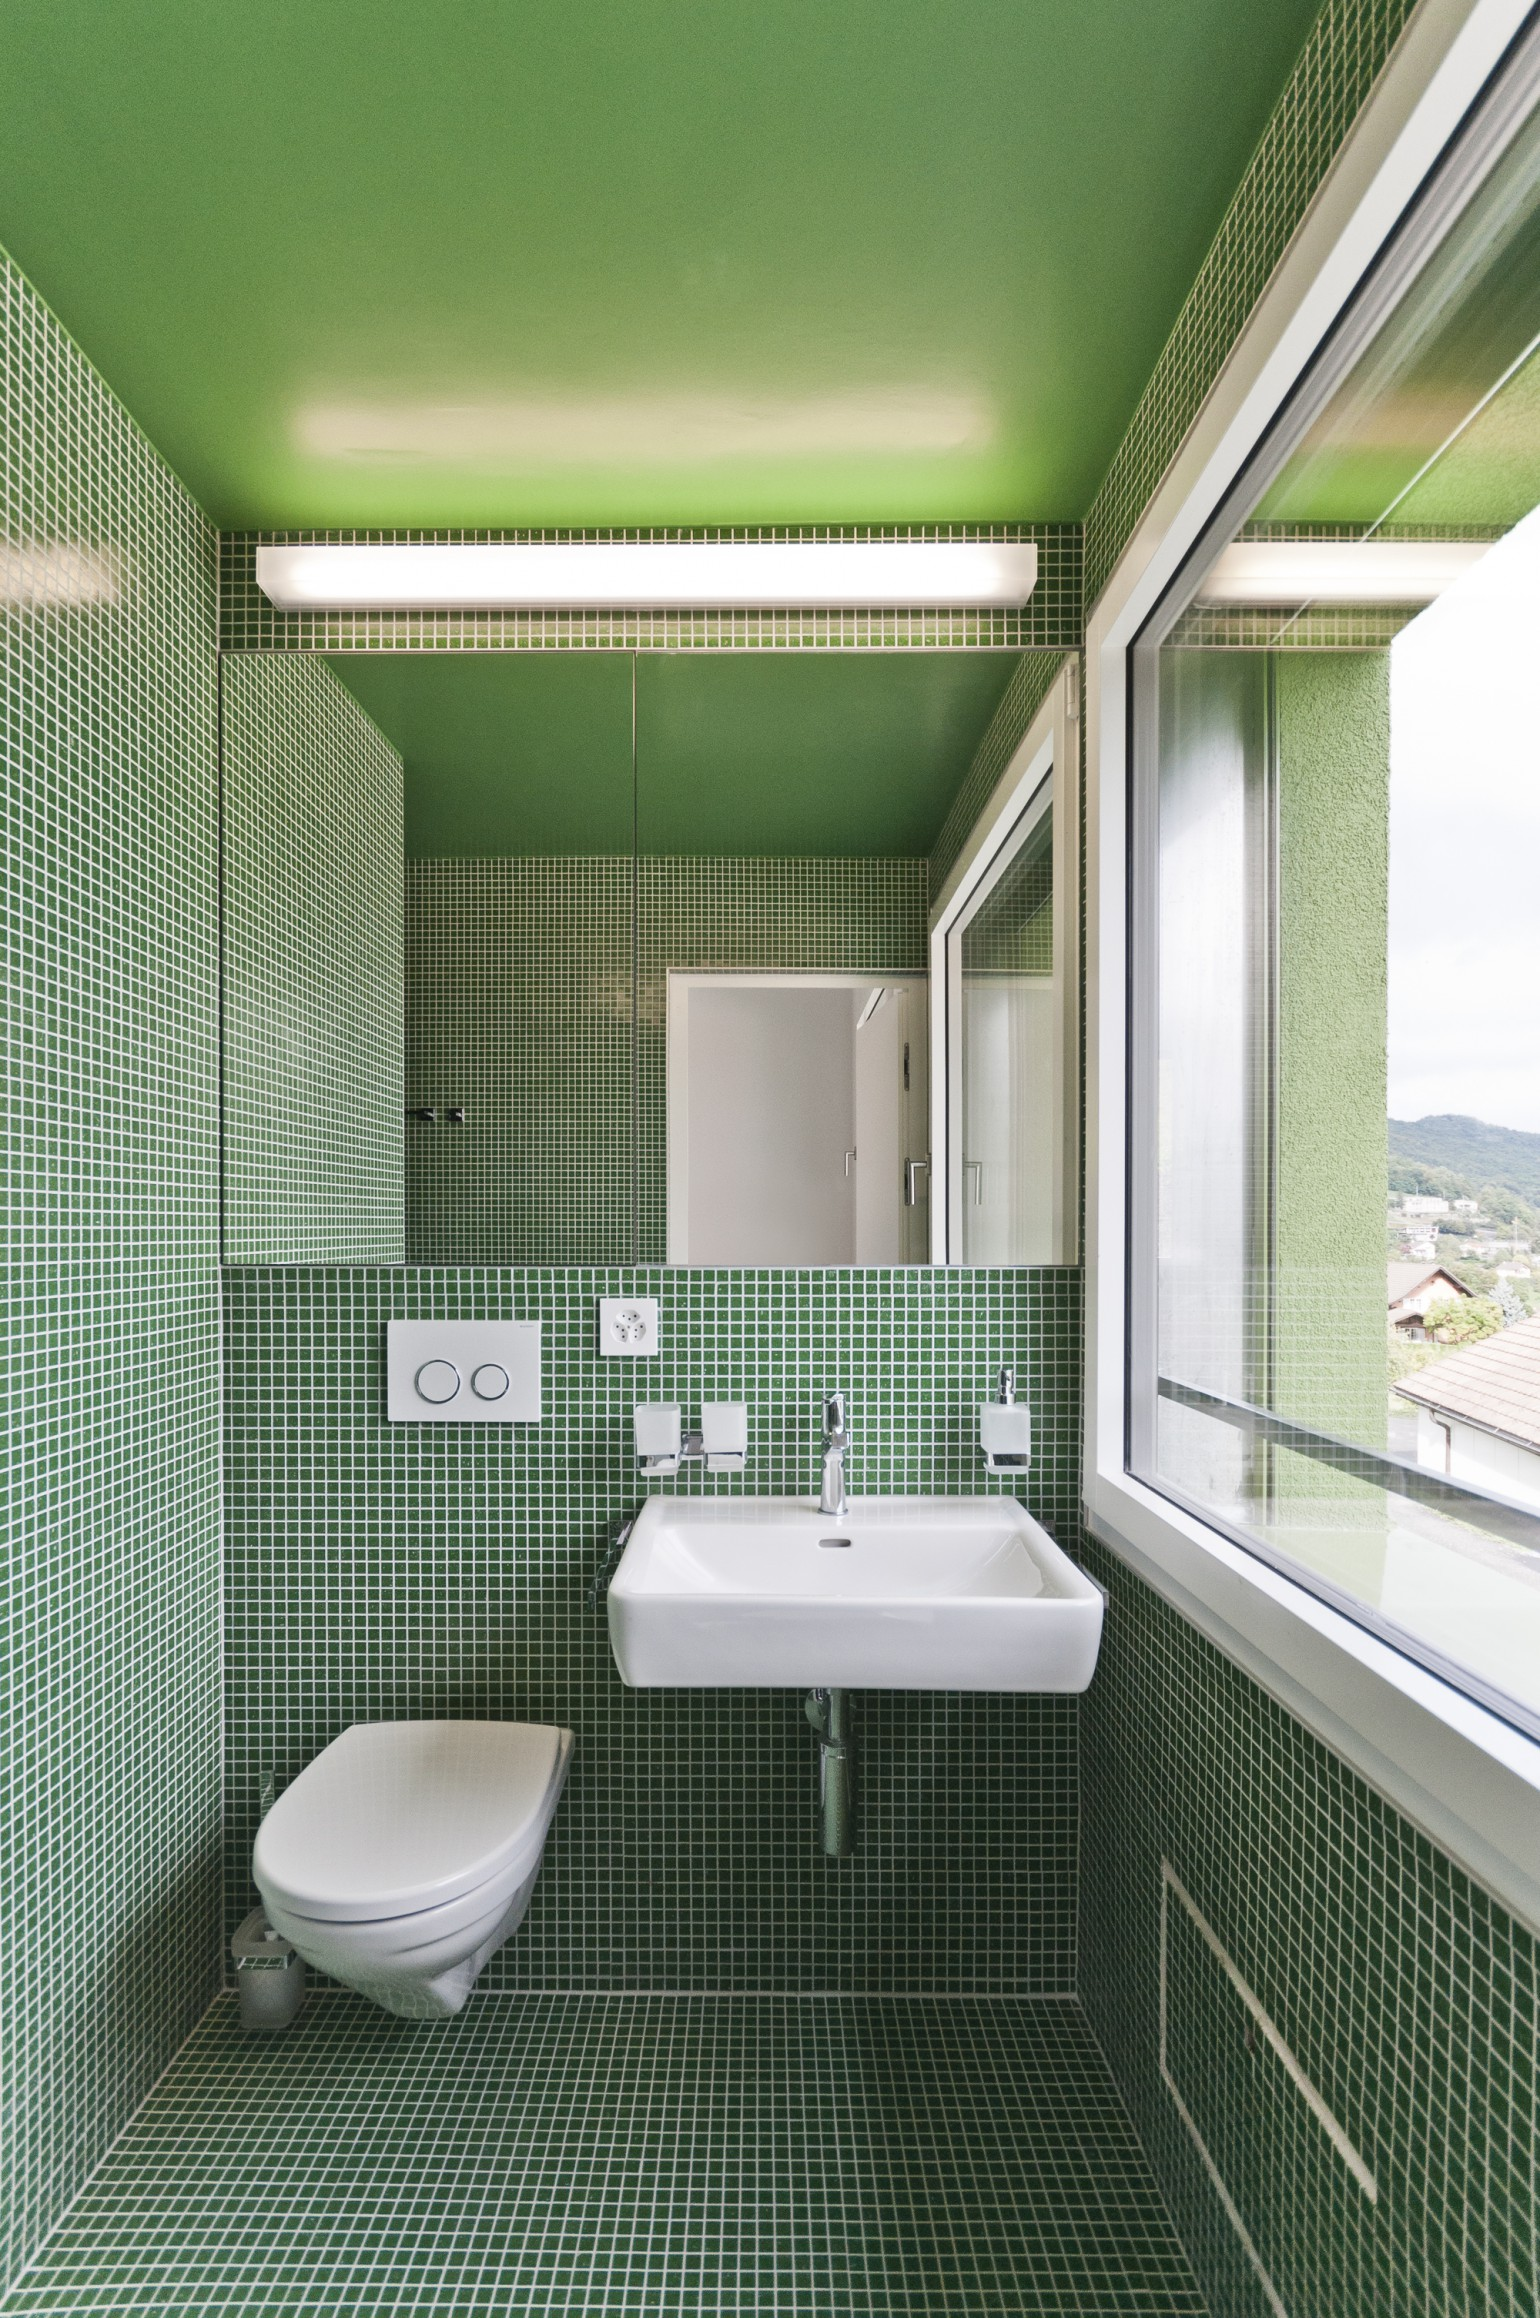 maison_catanese_choex_meyer_architecture_sion_10